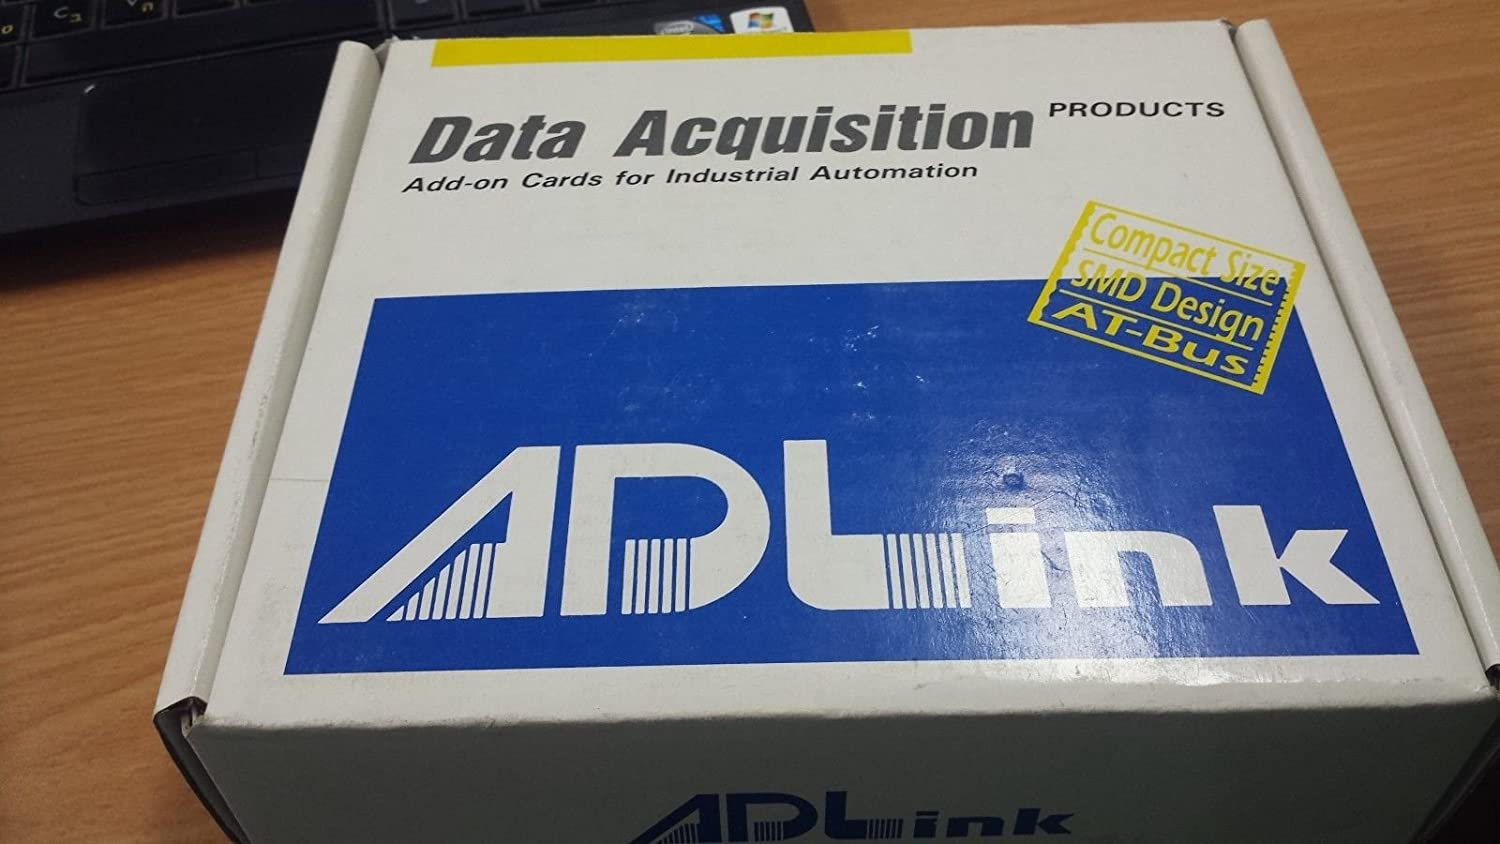 ADLINK ACLD-9137 Direct Connect Termination Board 37 Position D-Sub Pin Strip